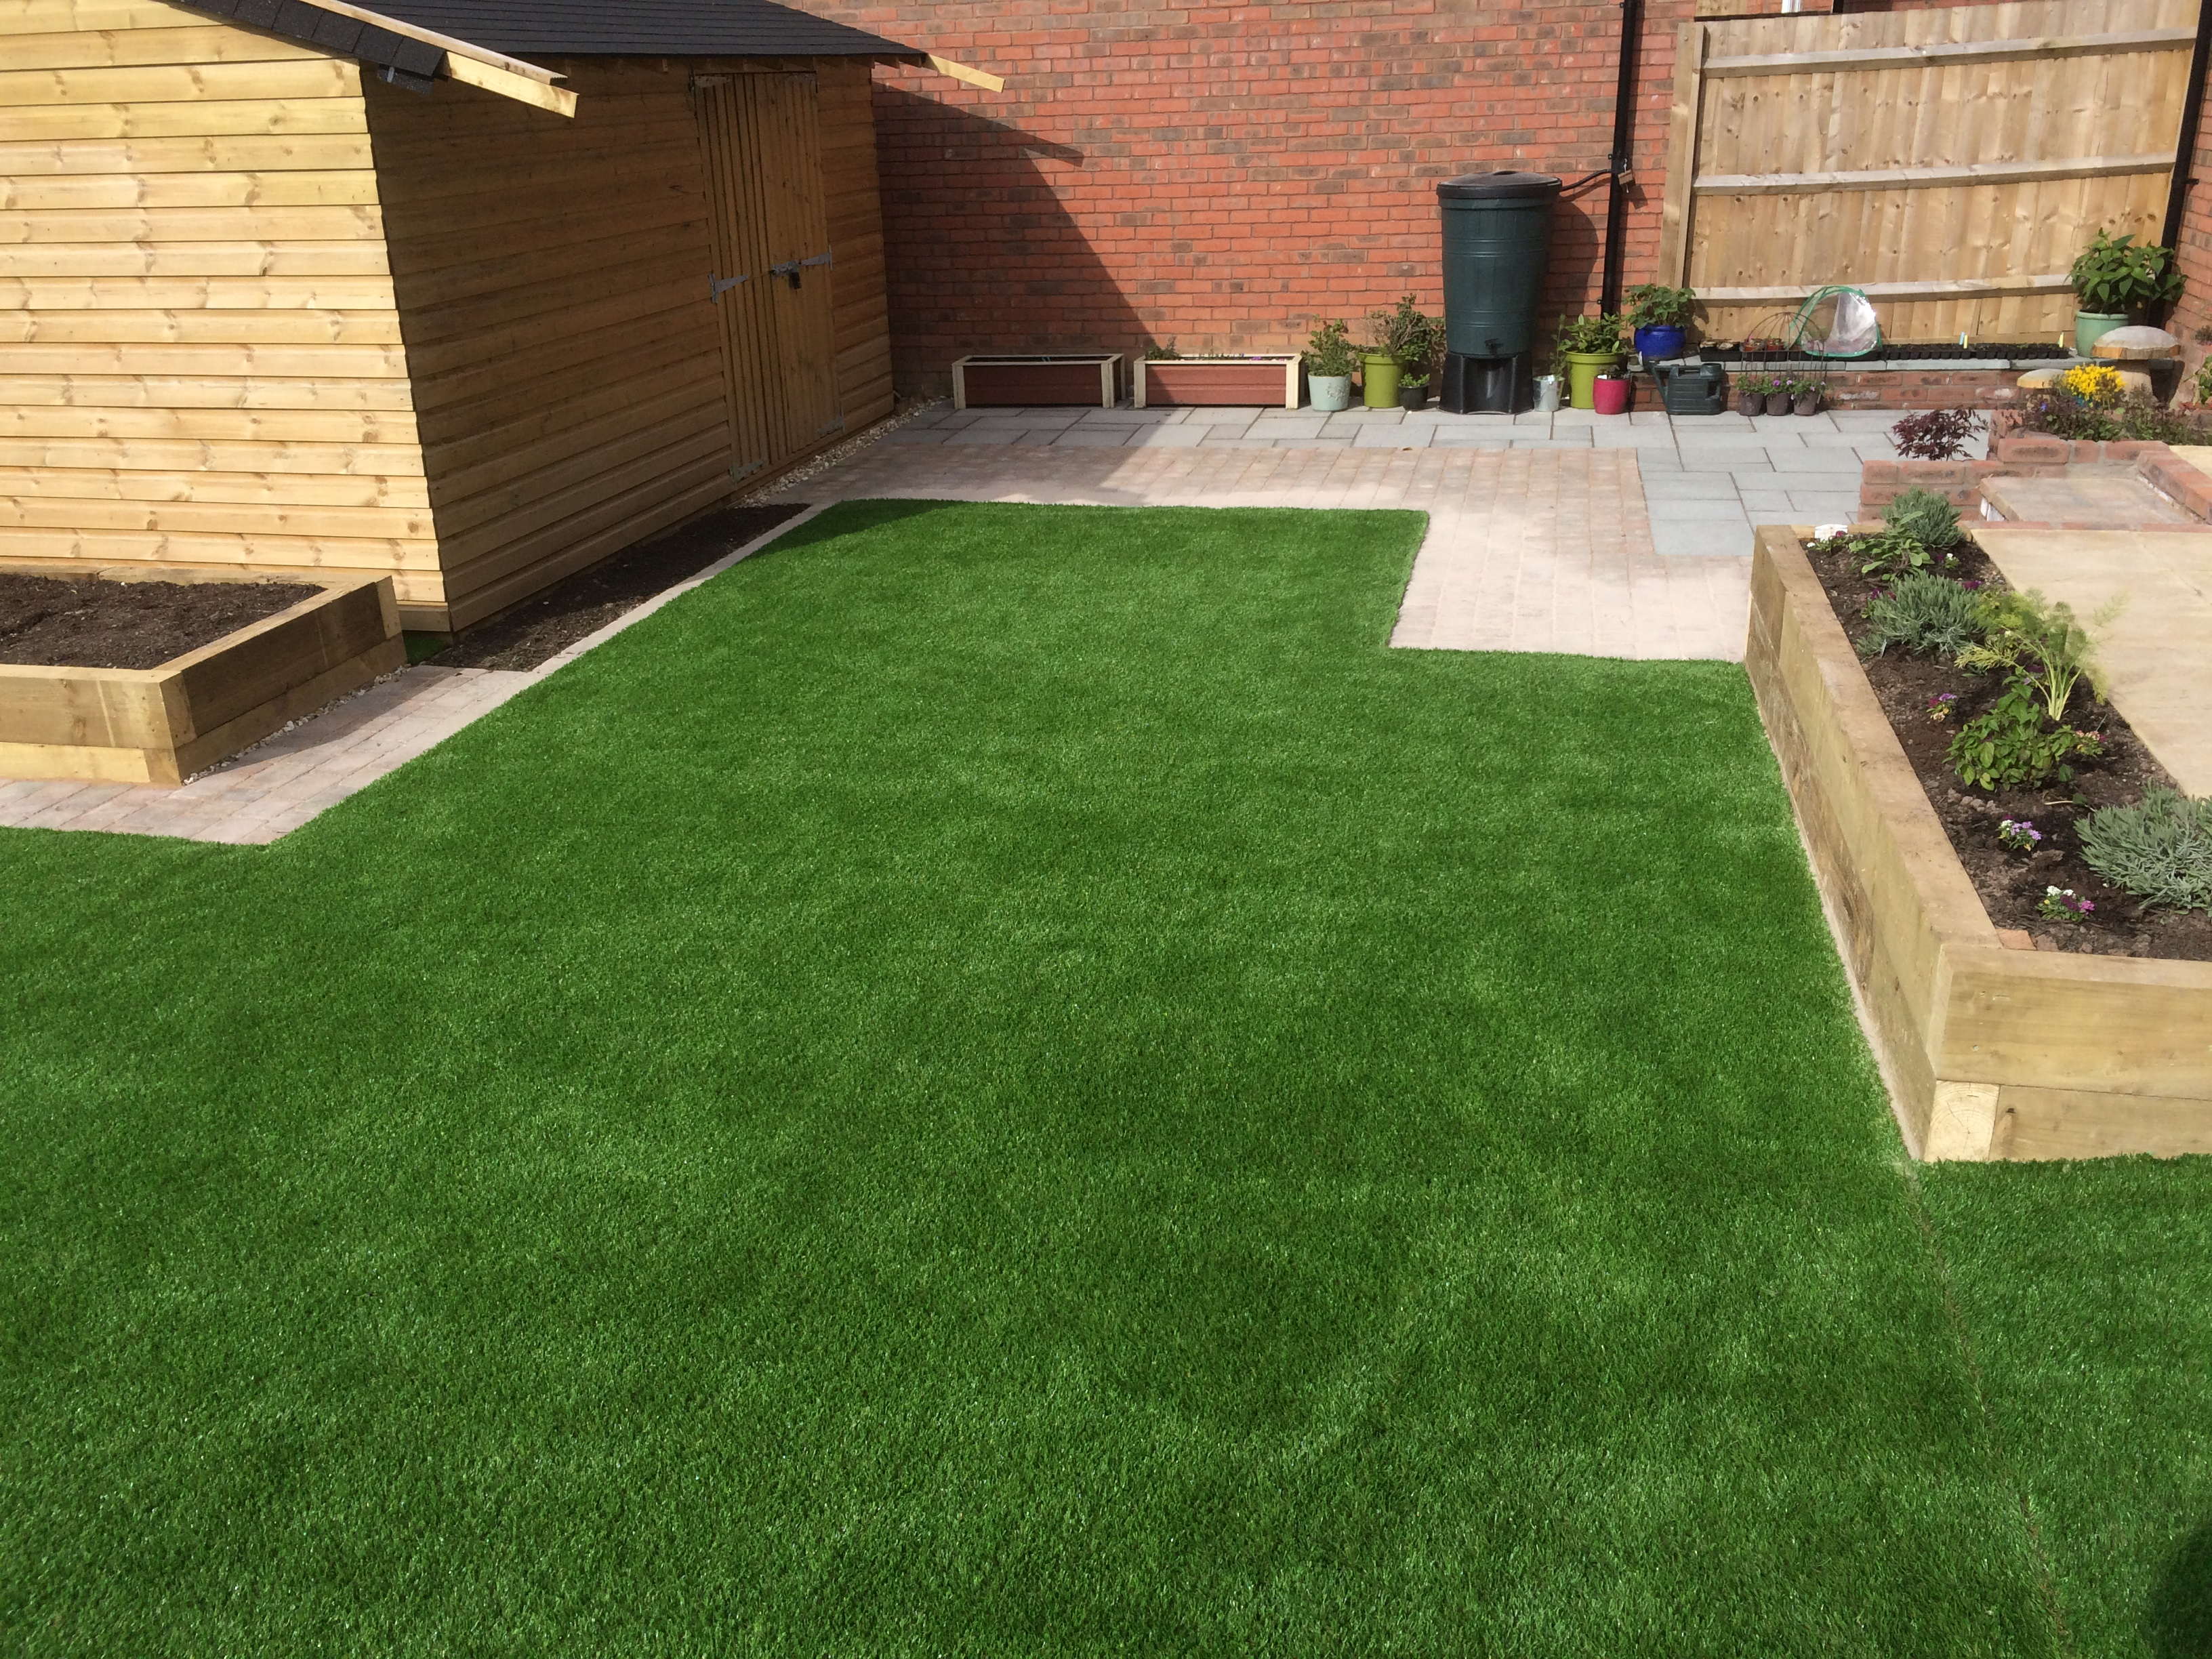 Astro Turf With Raised Beds J B Landscapesj B Landscapes